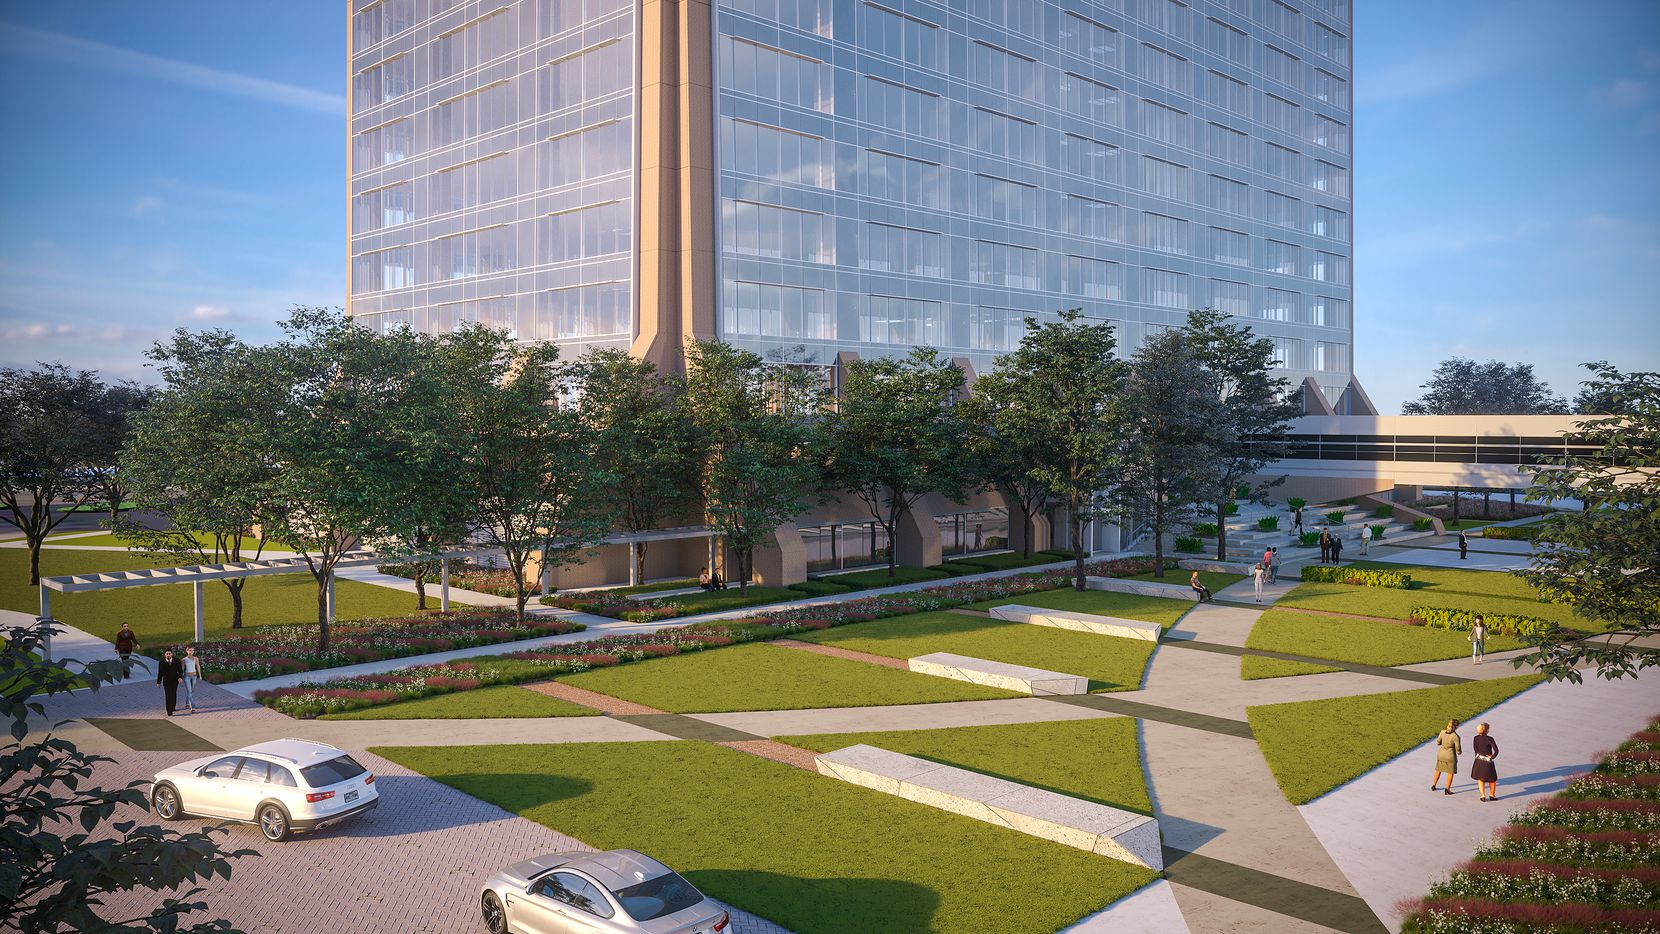 The 23-acre campus surrounding the high-rise will be redone with outside areas for tenants.